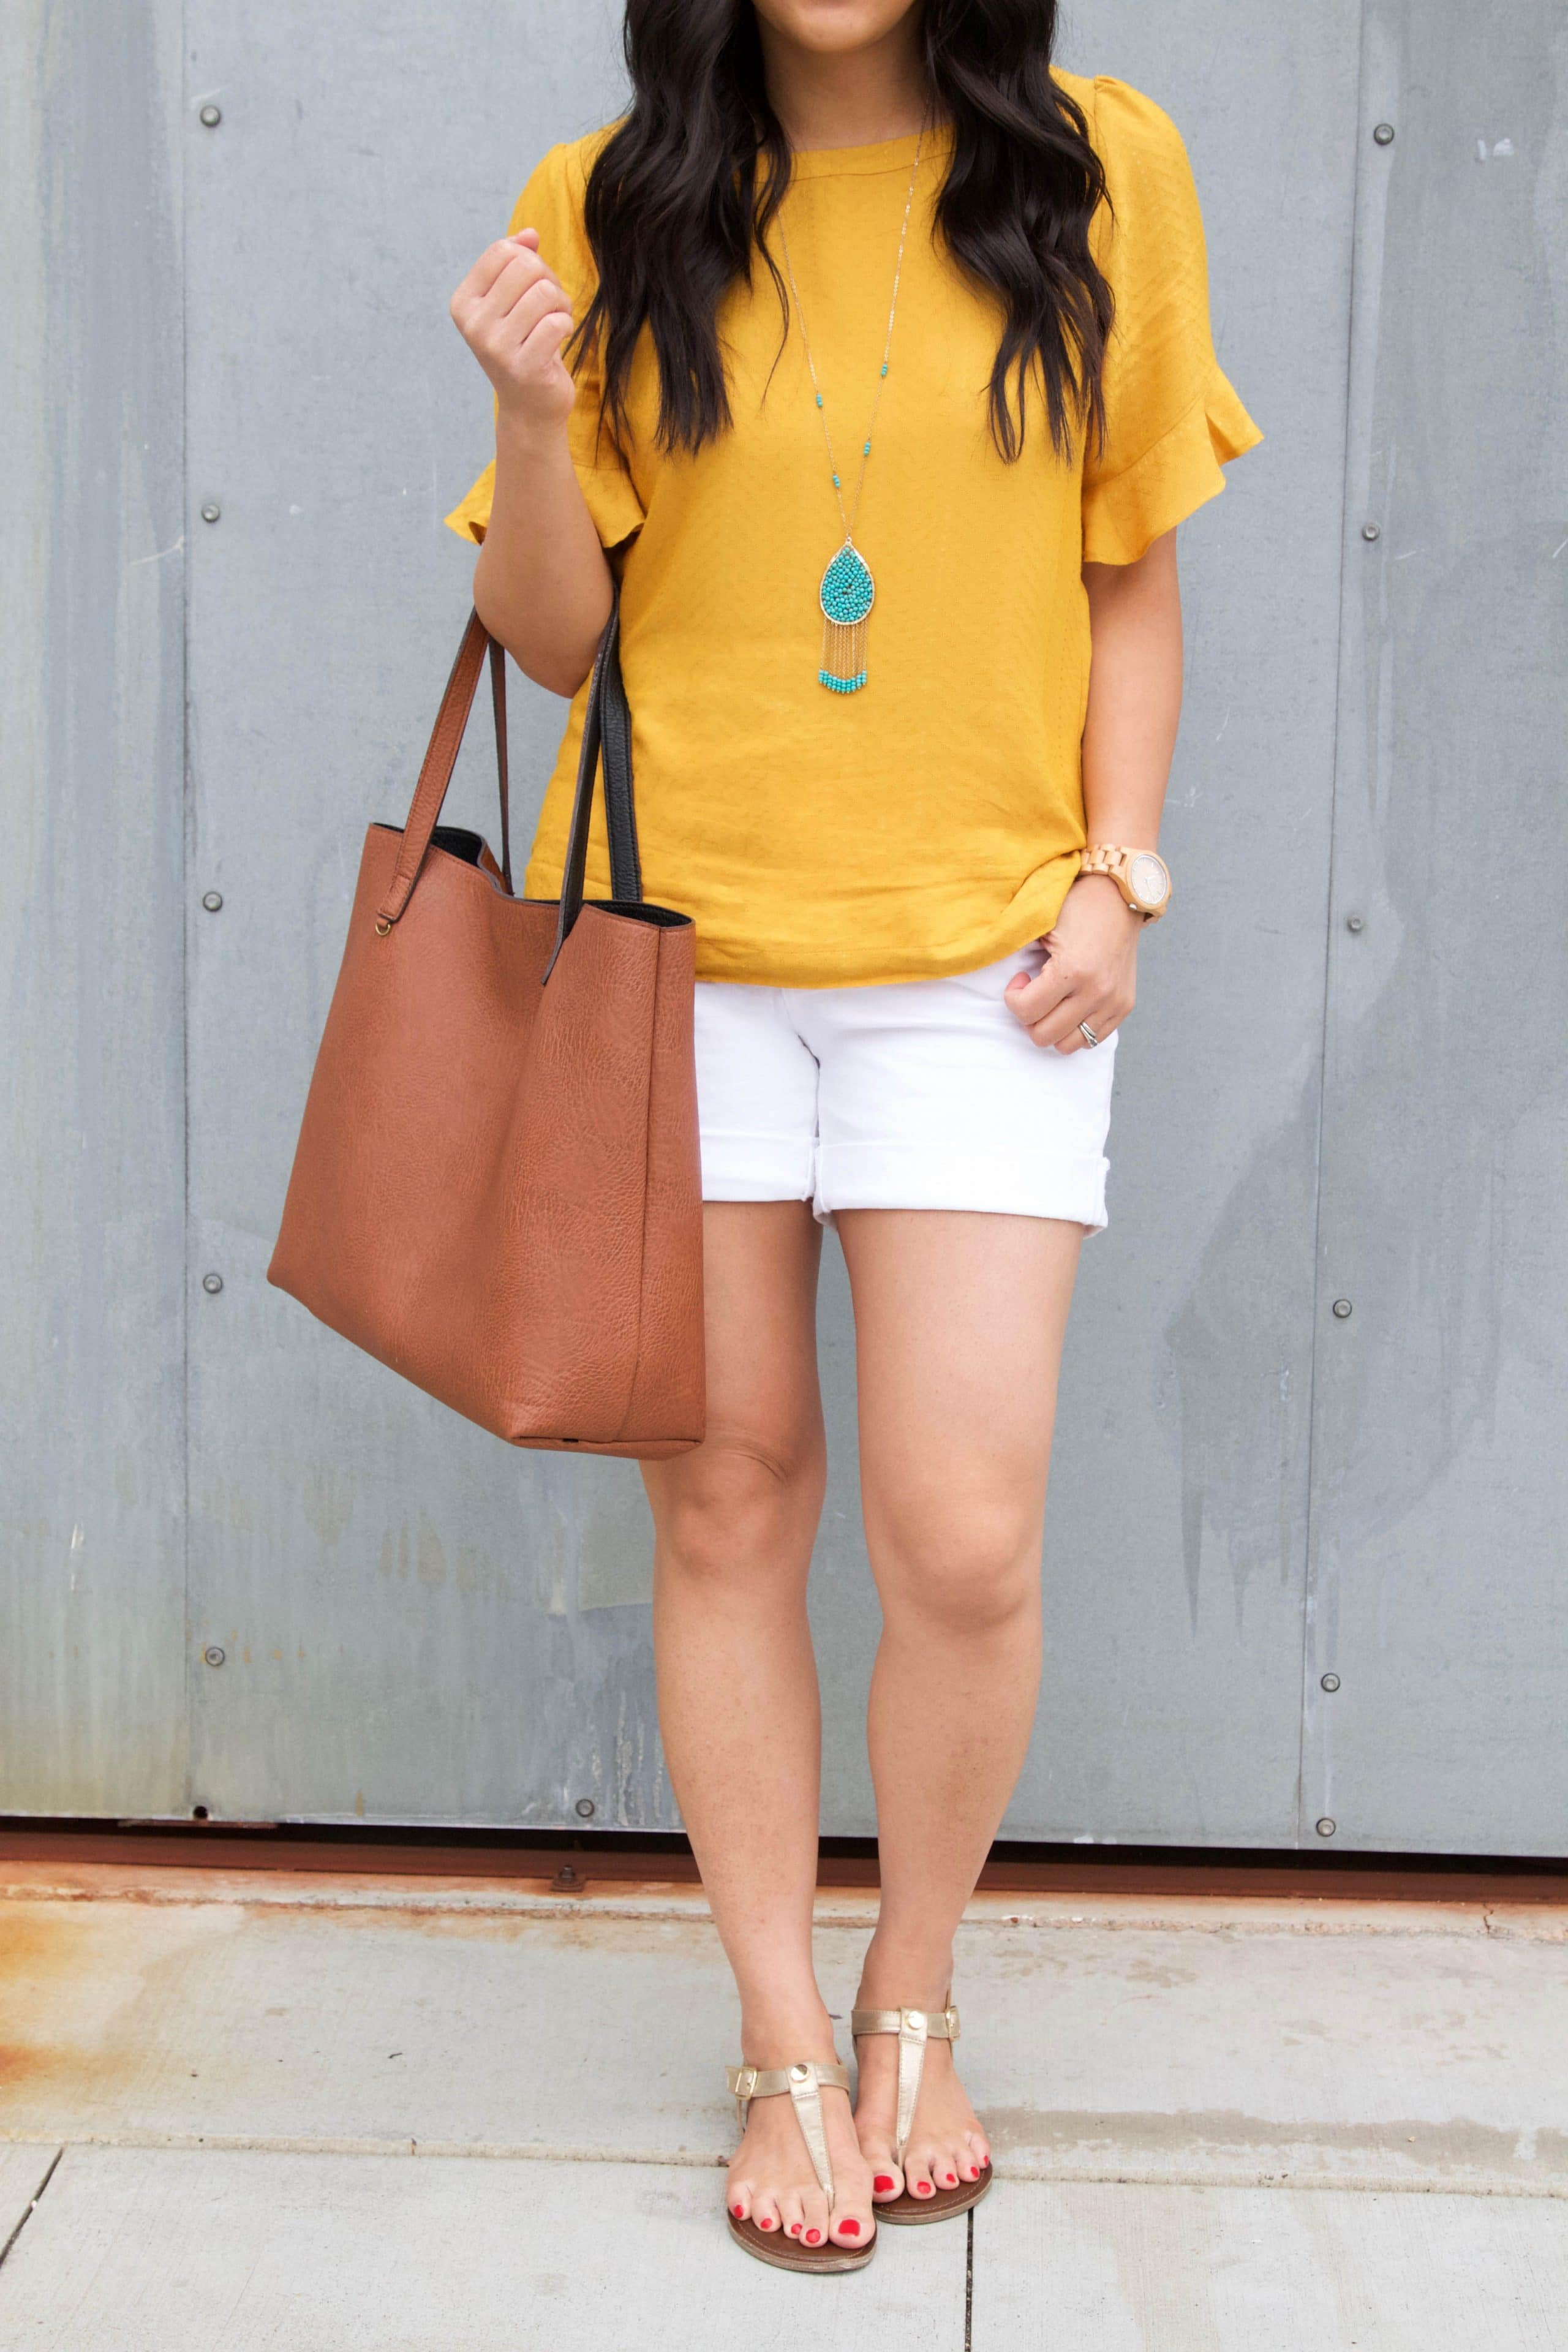 White shorts + Marigold Blouse + Cognac Tote + Turquoise Necklace